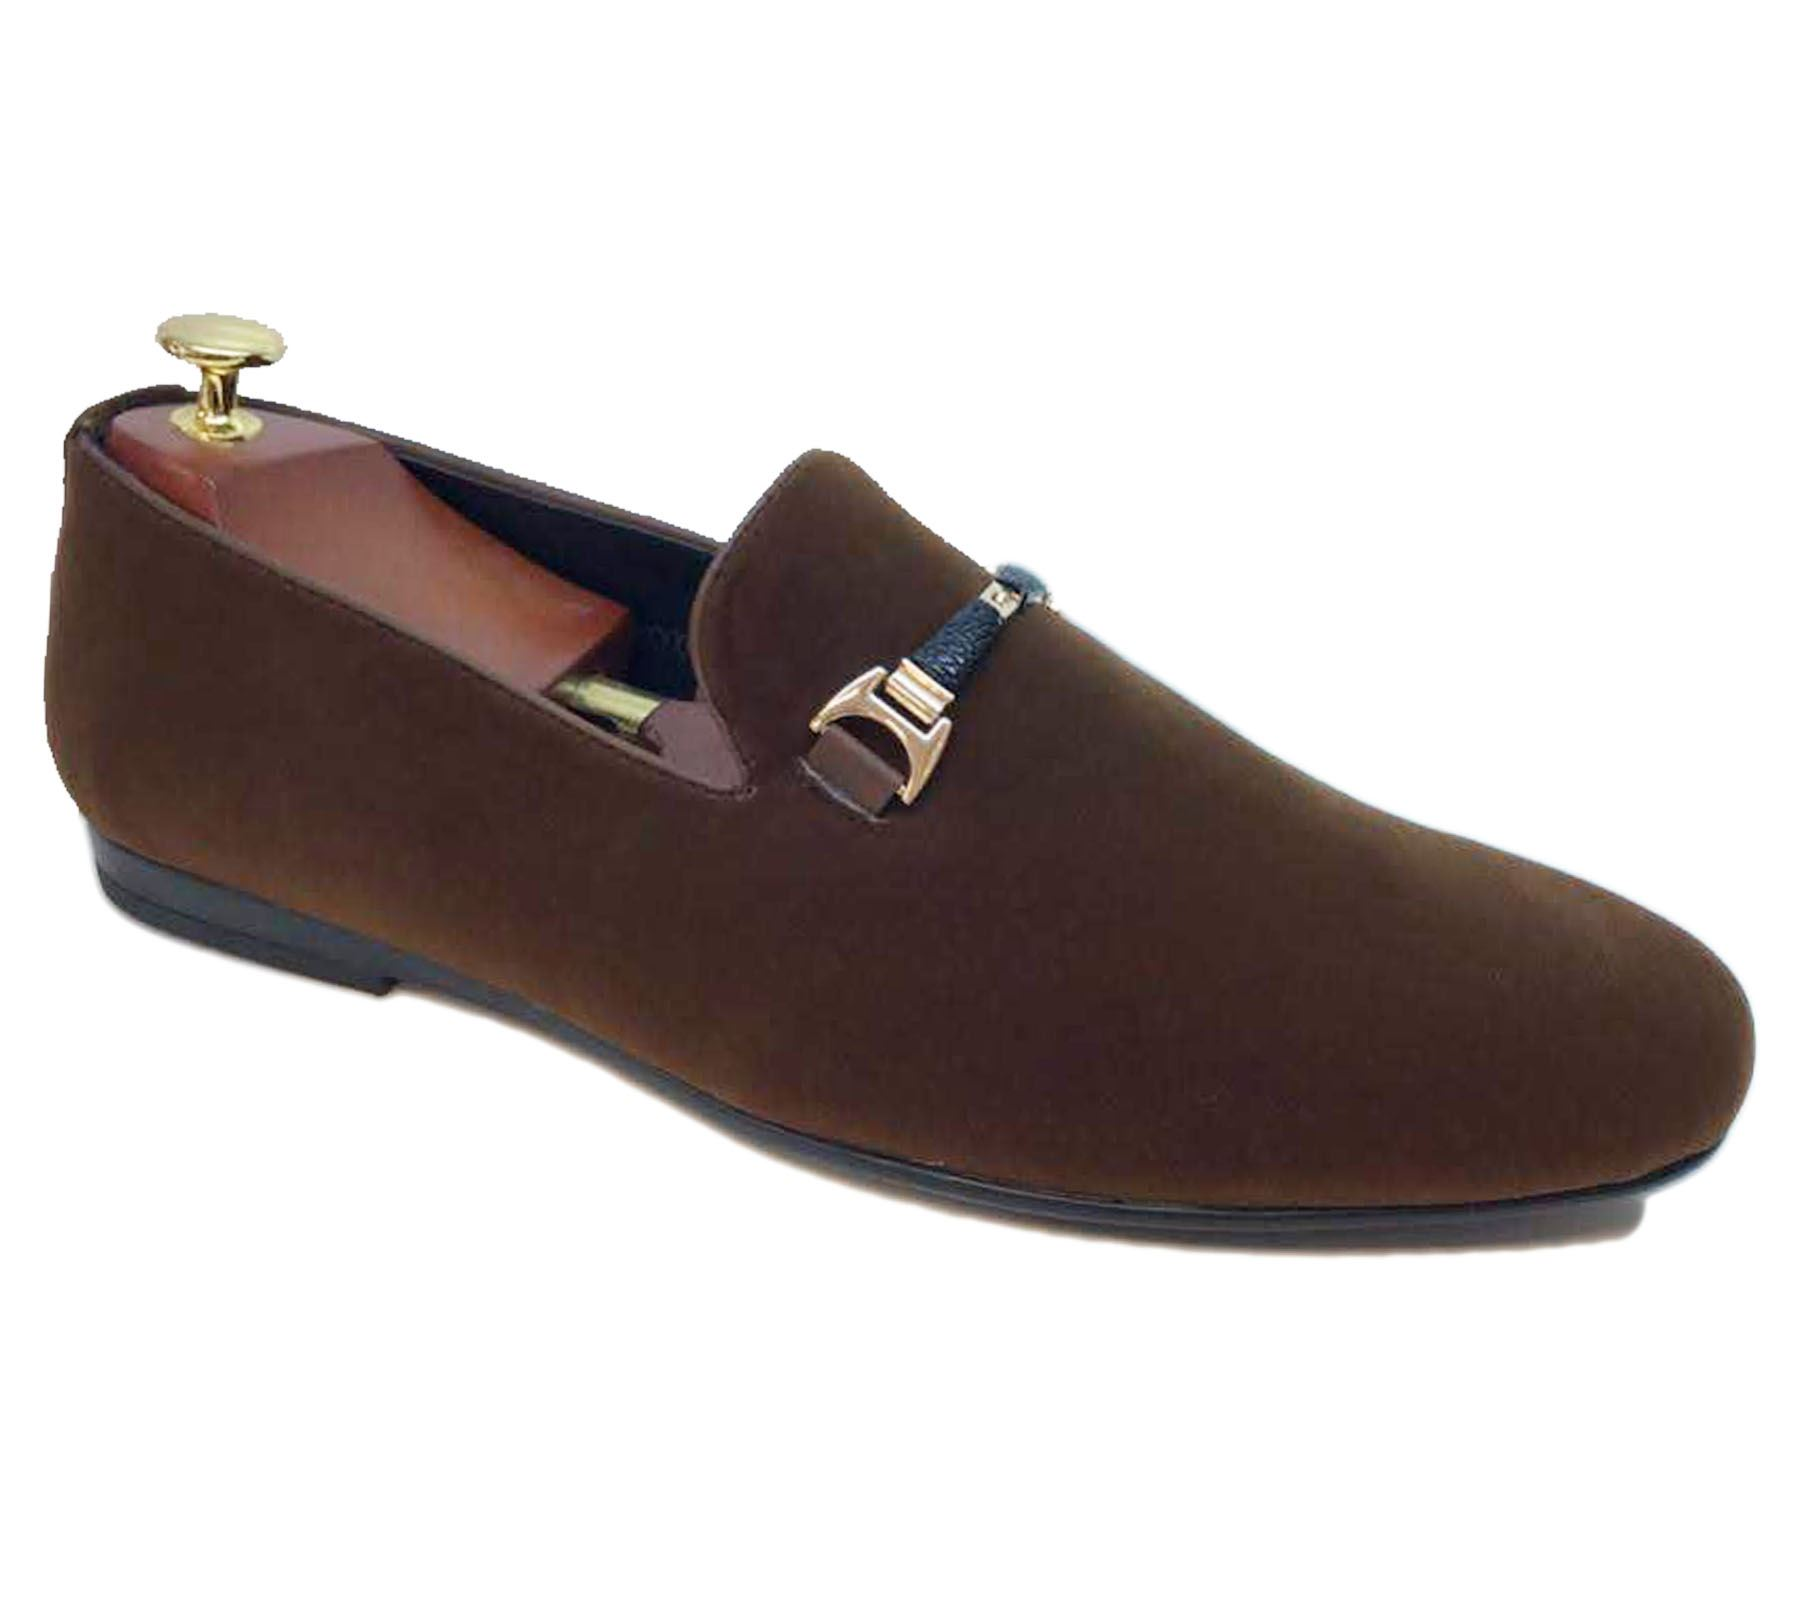 Mens-Loafers-Mocassin-Boat-Deck-Shoes-Flat-Slip-On-Driving-Casual-Smart-Pumps thumbnail 14